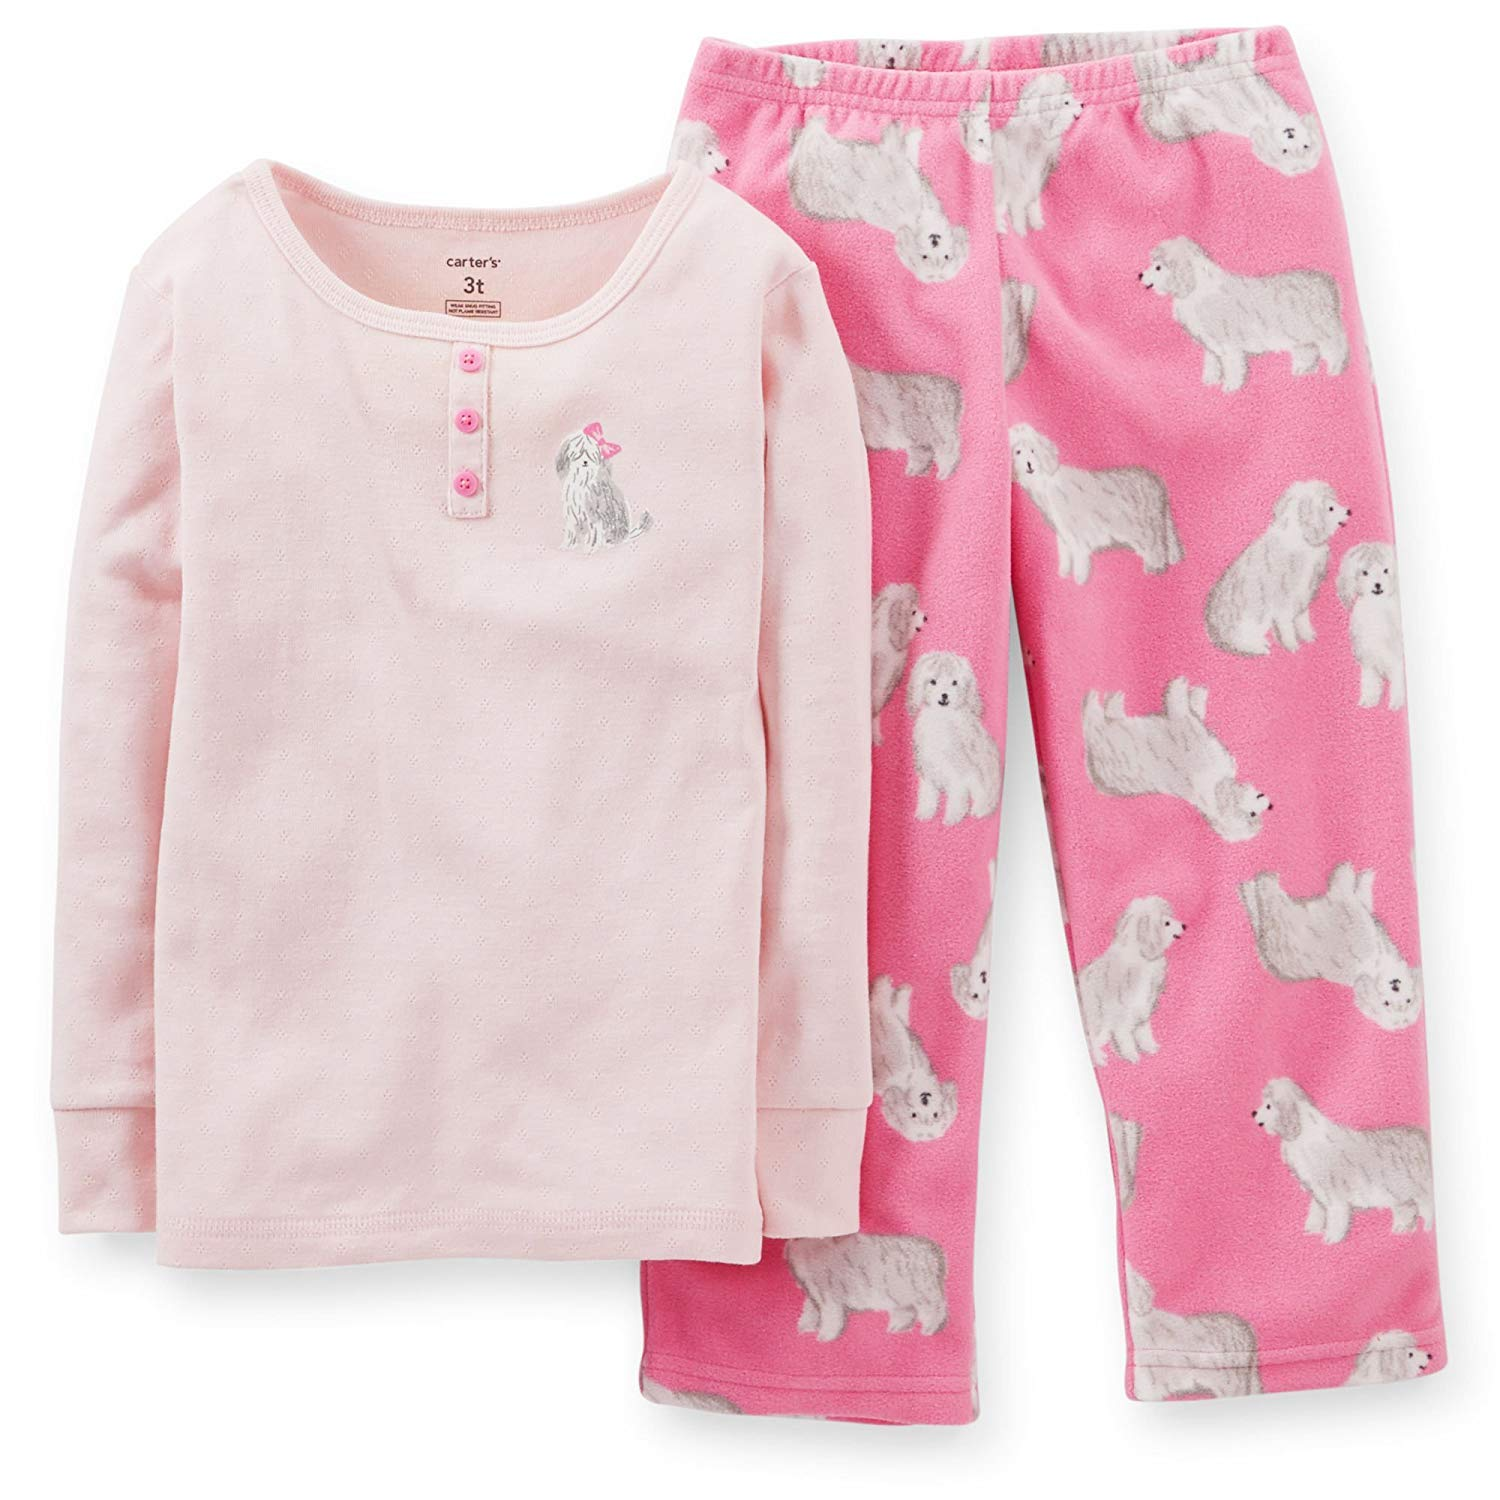 ac116a687f Get Quotations · Carter s Big Girls 2 Pc Fleece Cotton Pajama Set Pjs